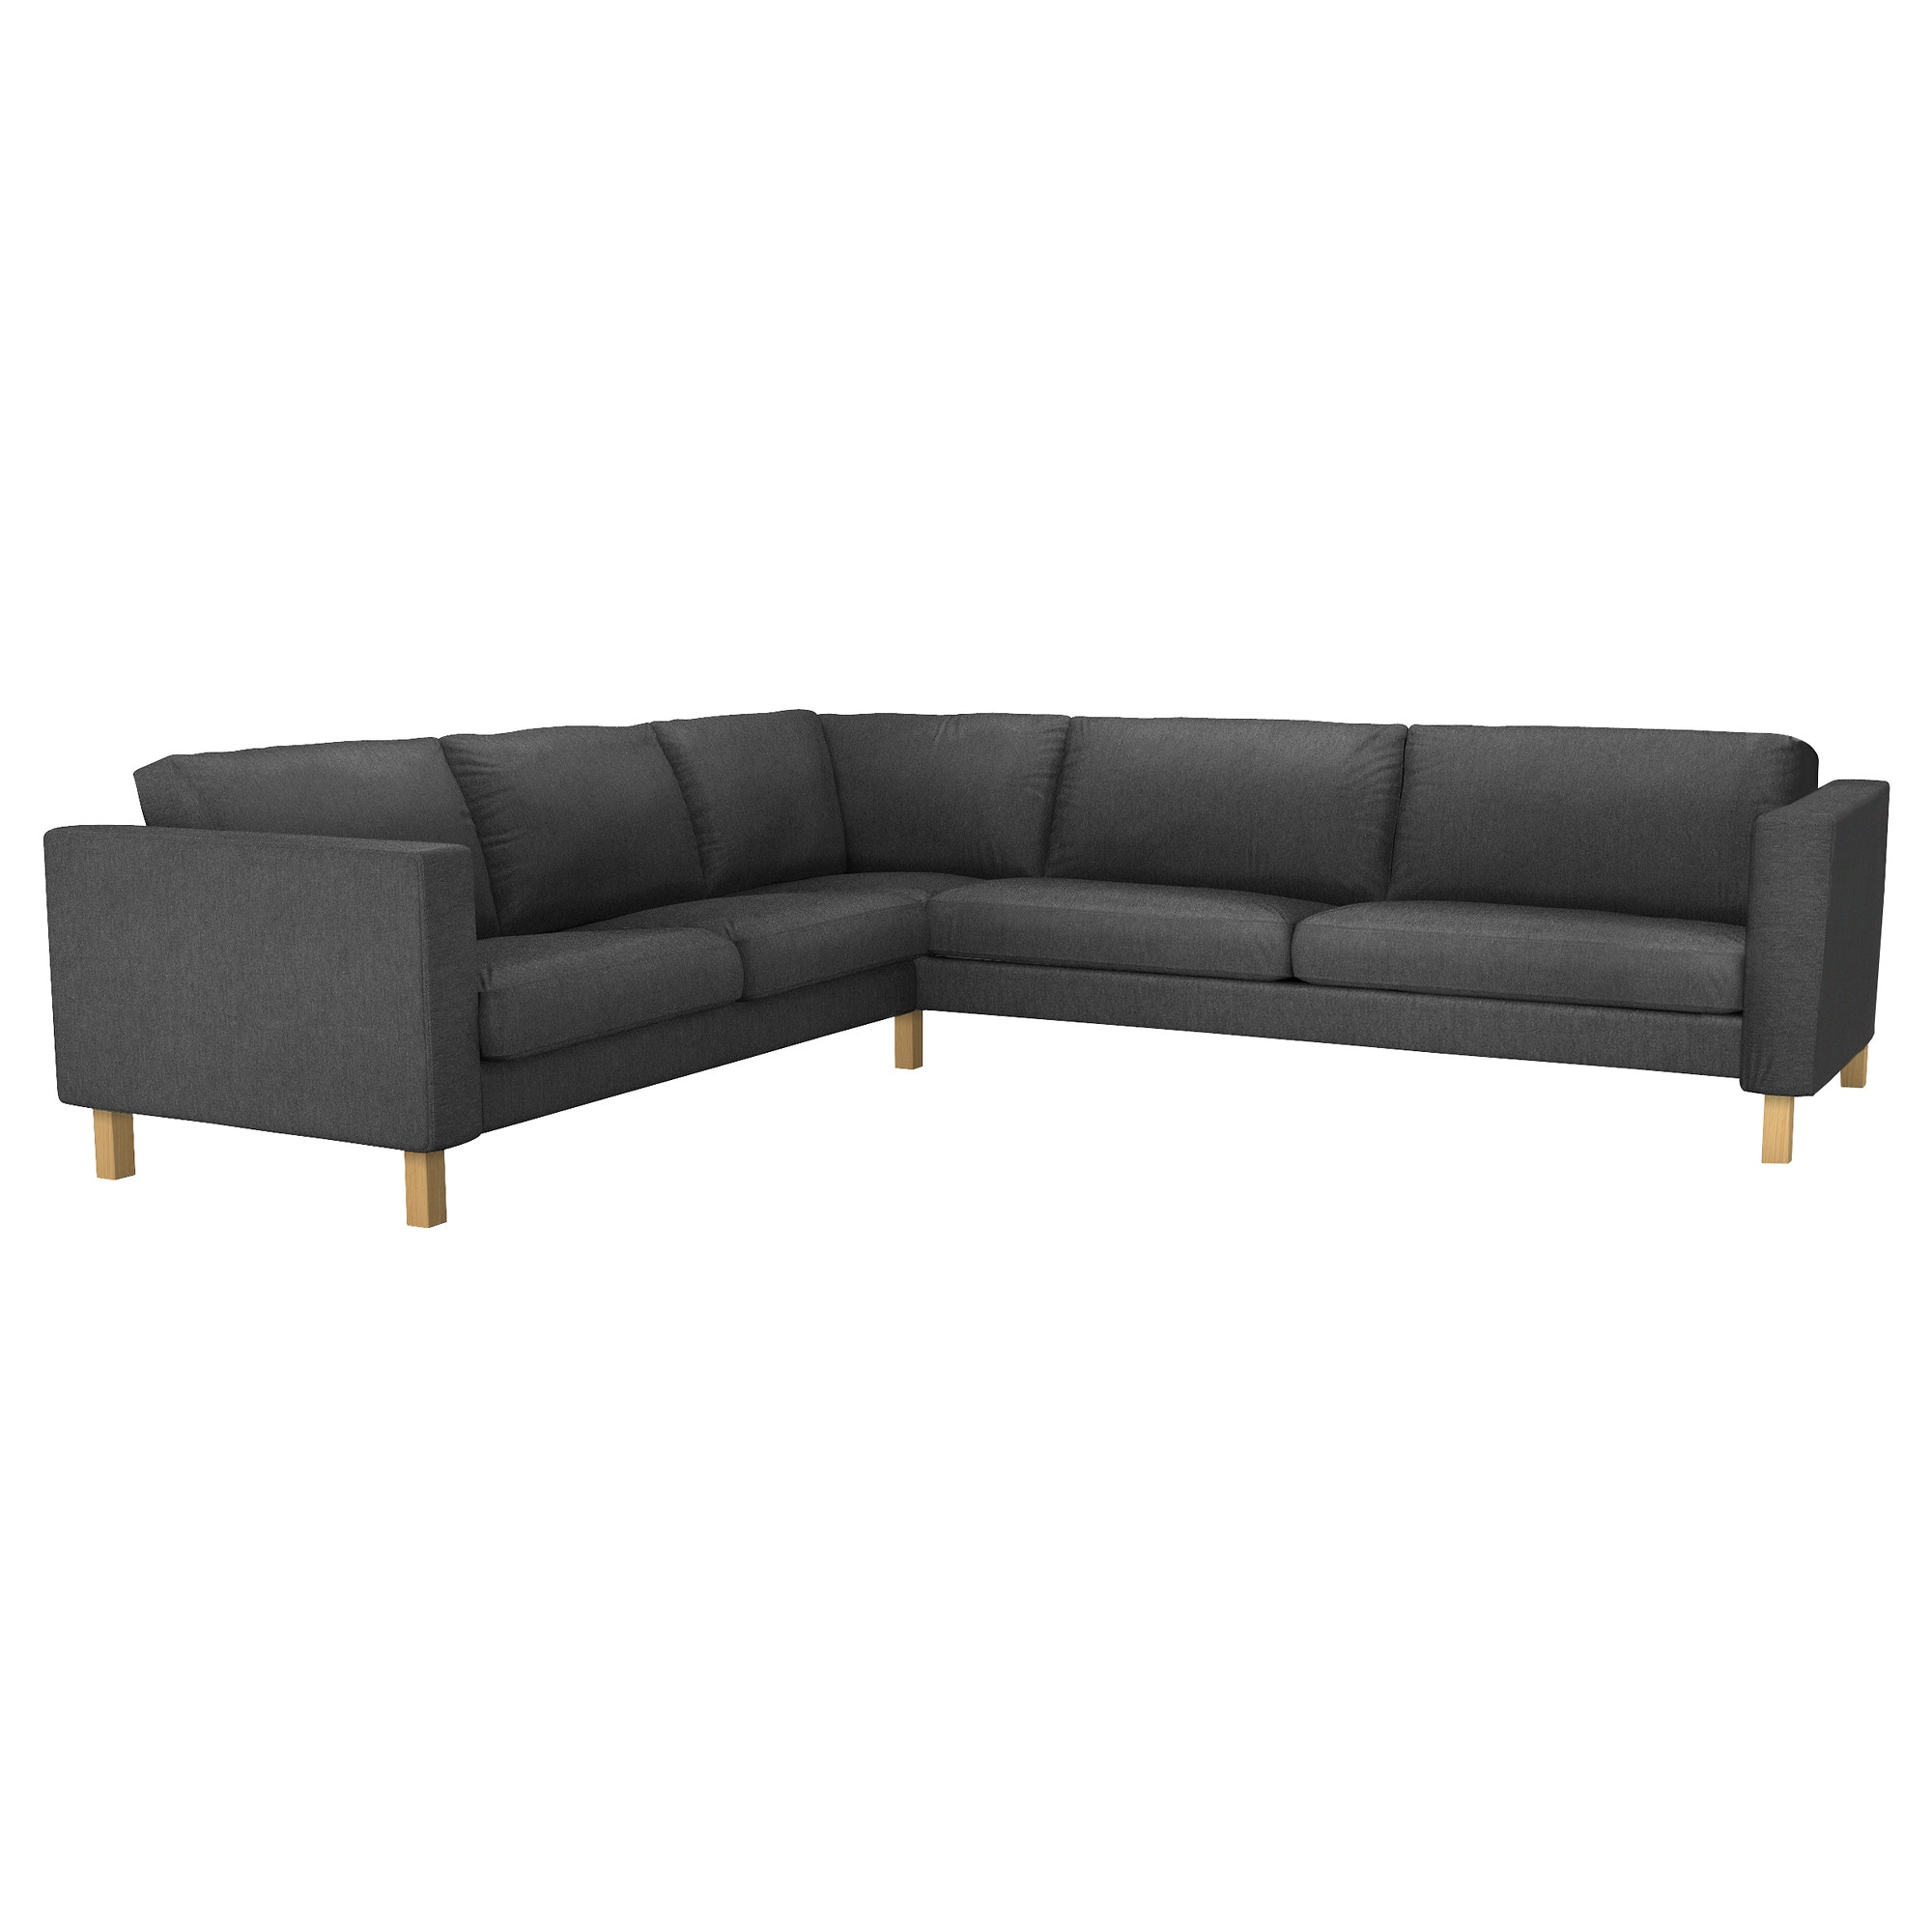 Sofa Bed Sofas picture on sectional sofa bed ikea with Sofa Bed Sofas, sofa 7733869ae501442da6926fac77cd155b